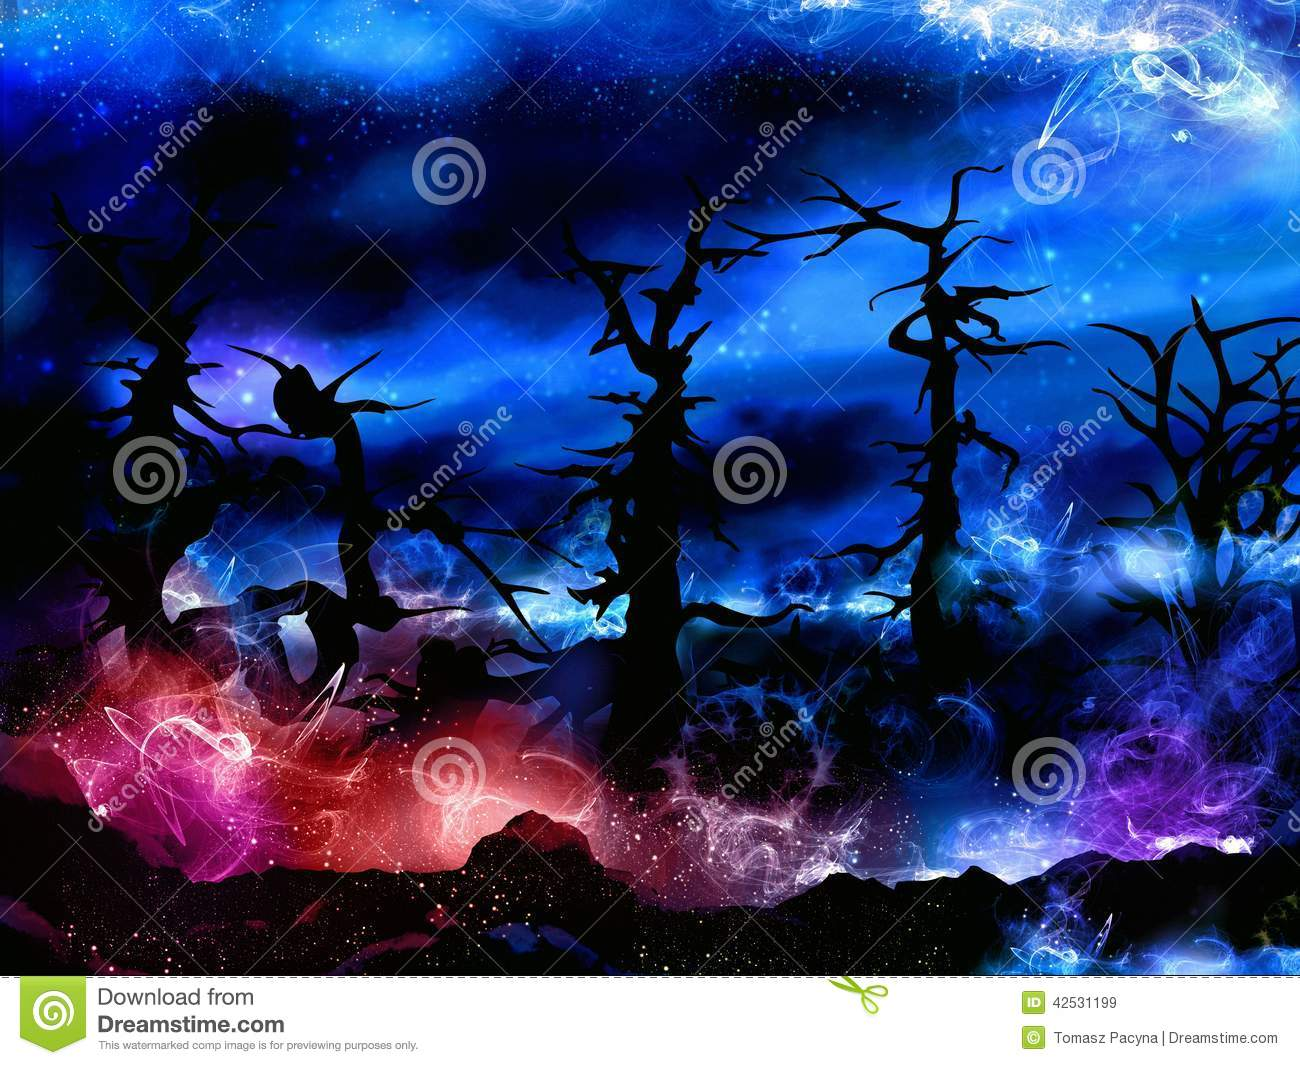 Spooky magical forest with mysterious lights